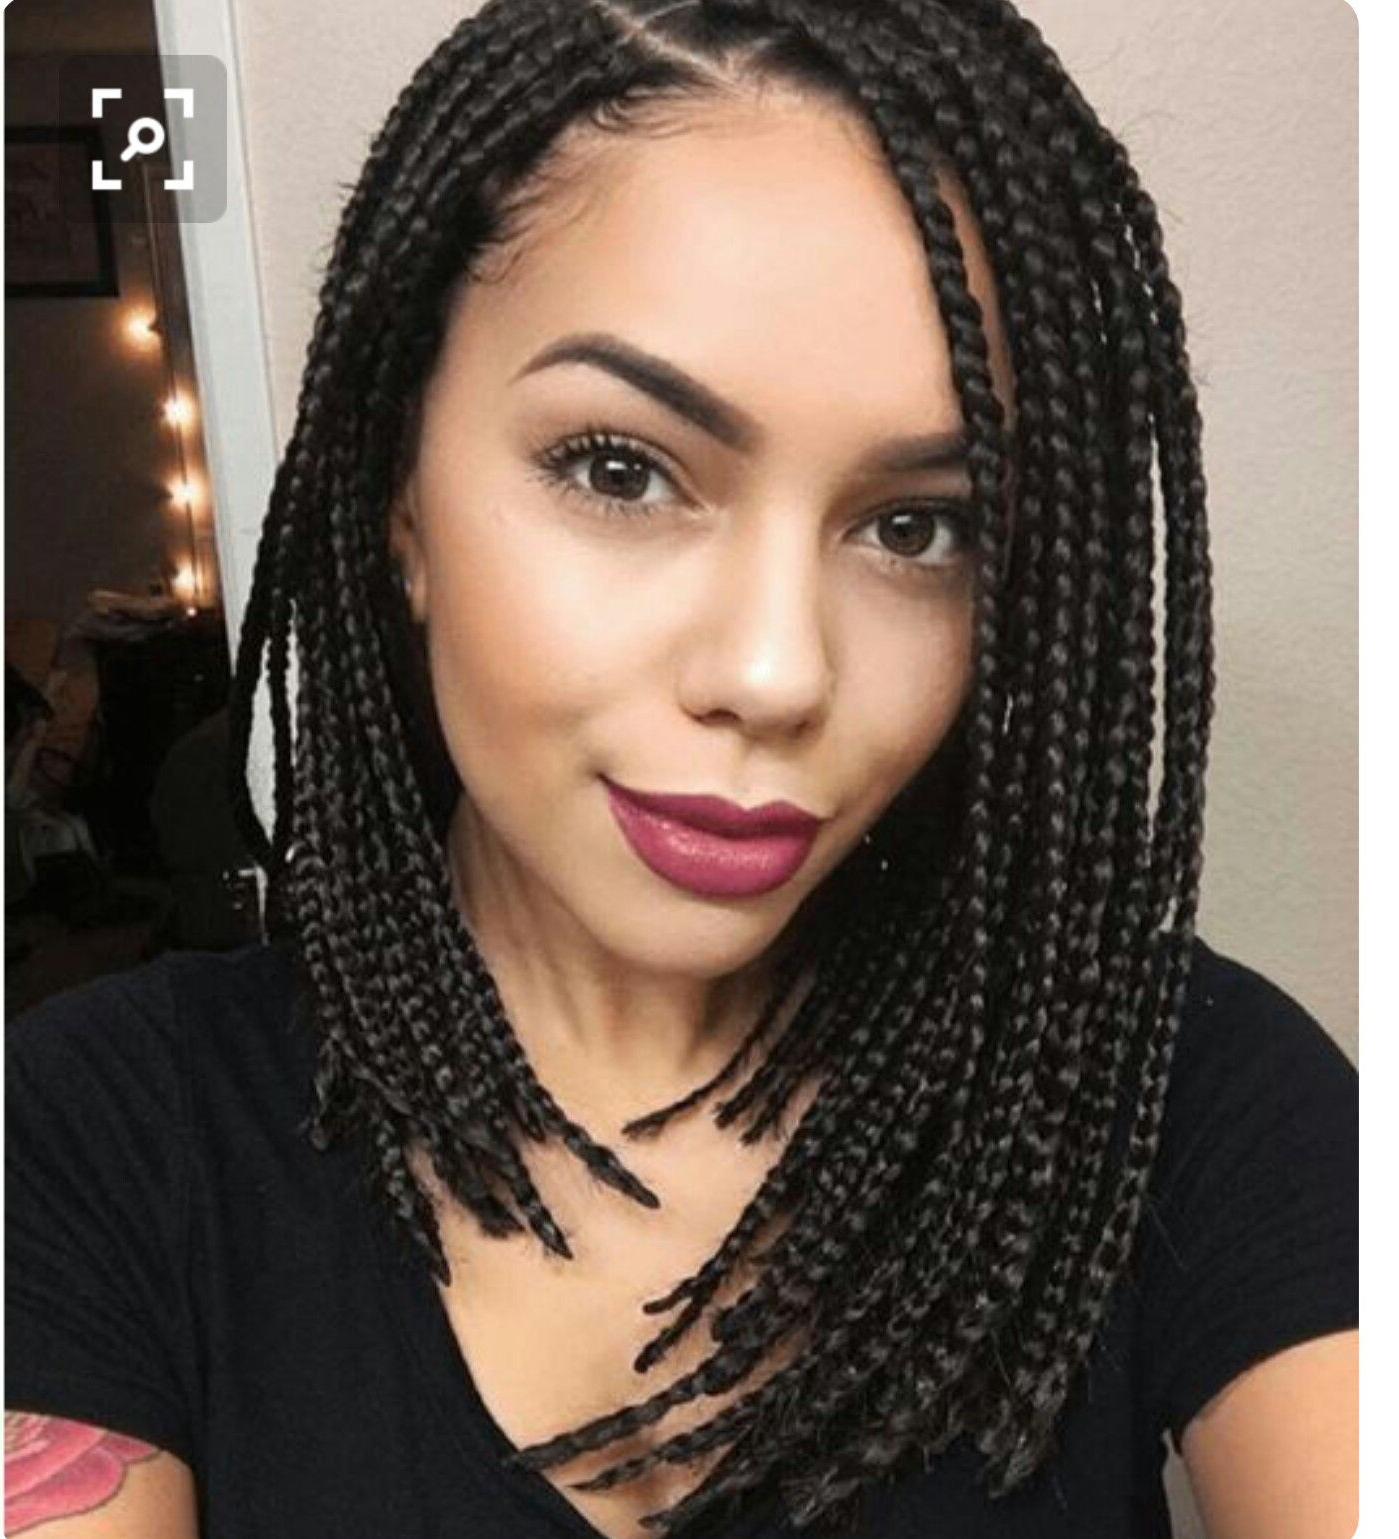 Hairstyles : Chic Braided Bob Hairstyle Gorgeous Short Jumbo In Widely Used Short And Chic Bob Braid Hairstyles (View 3 of 20)